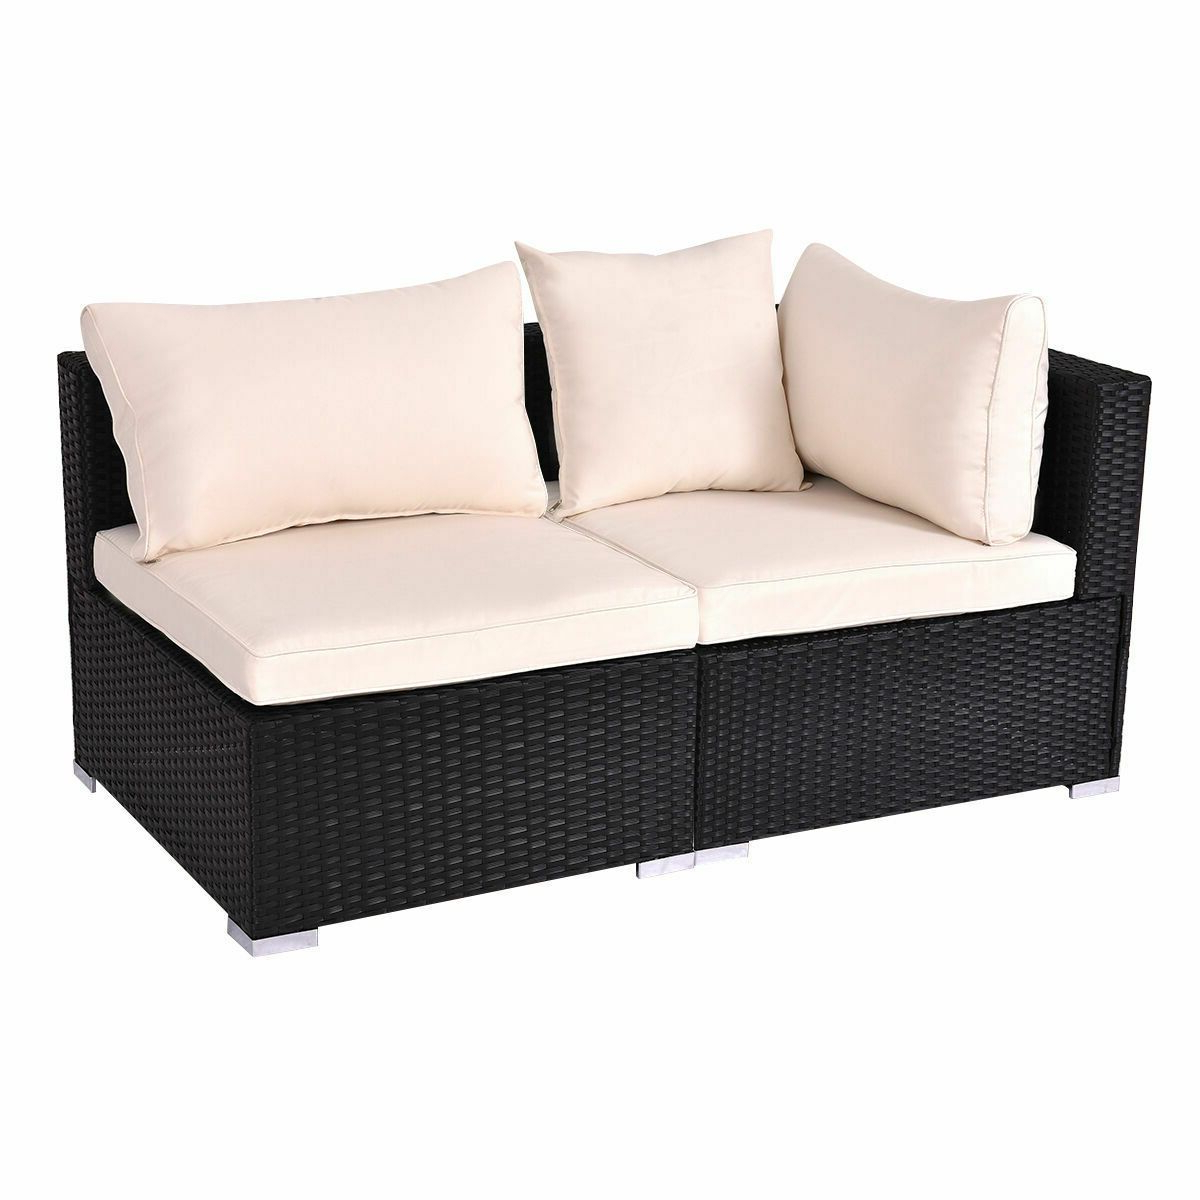 Mullenax Outdoor Loveseats With Cushions Inside Most Recently Released Outdoor Patio Rattan Furniture Set Infinitely Combination (View 7 of 20)